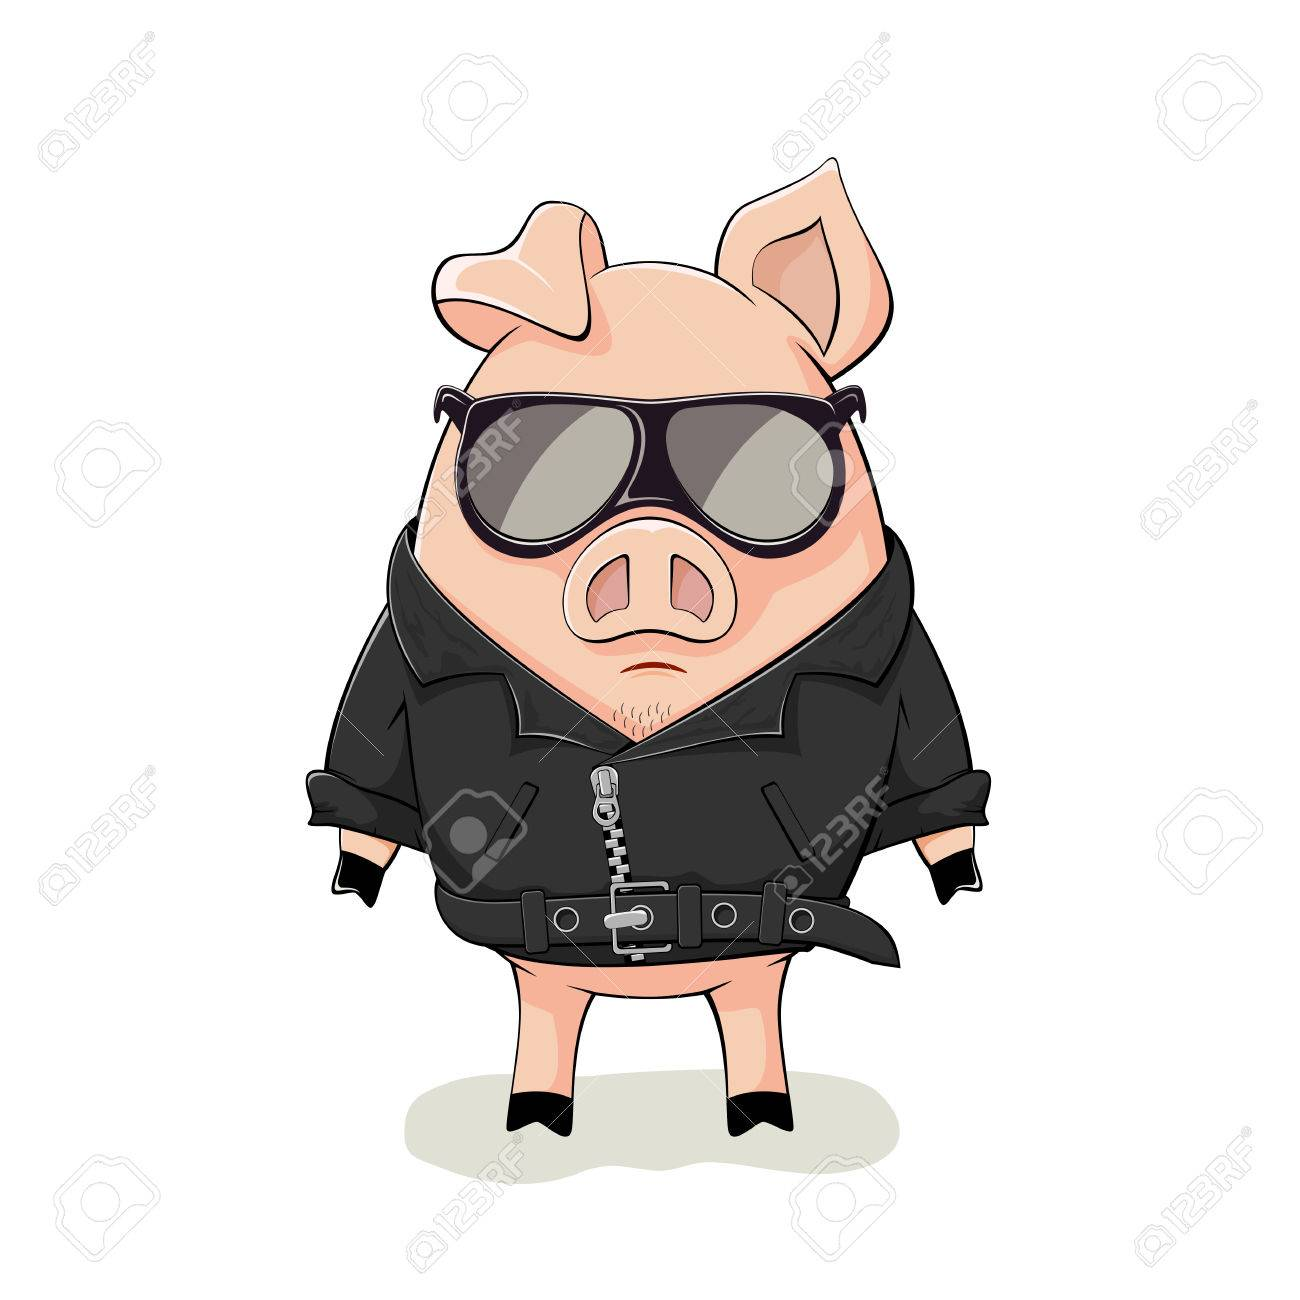 Pink pig with black sunglasses and leather jacket isolated on white background, illustration. - 75868468